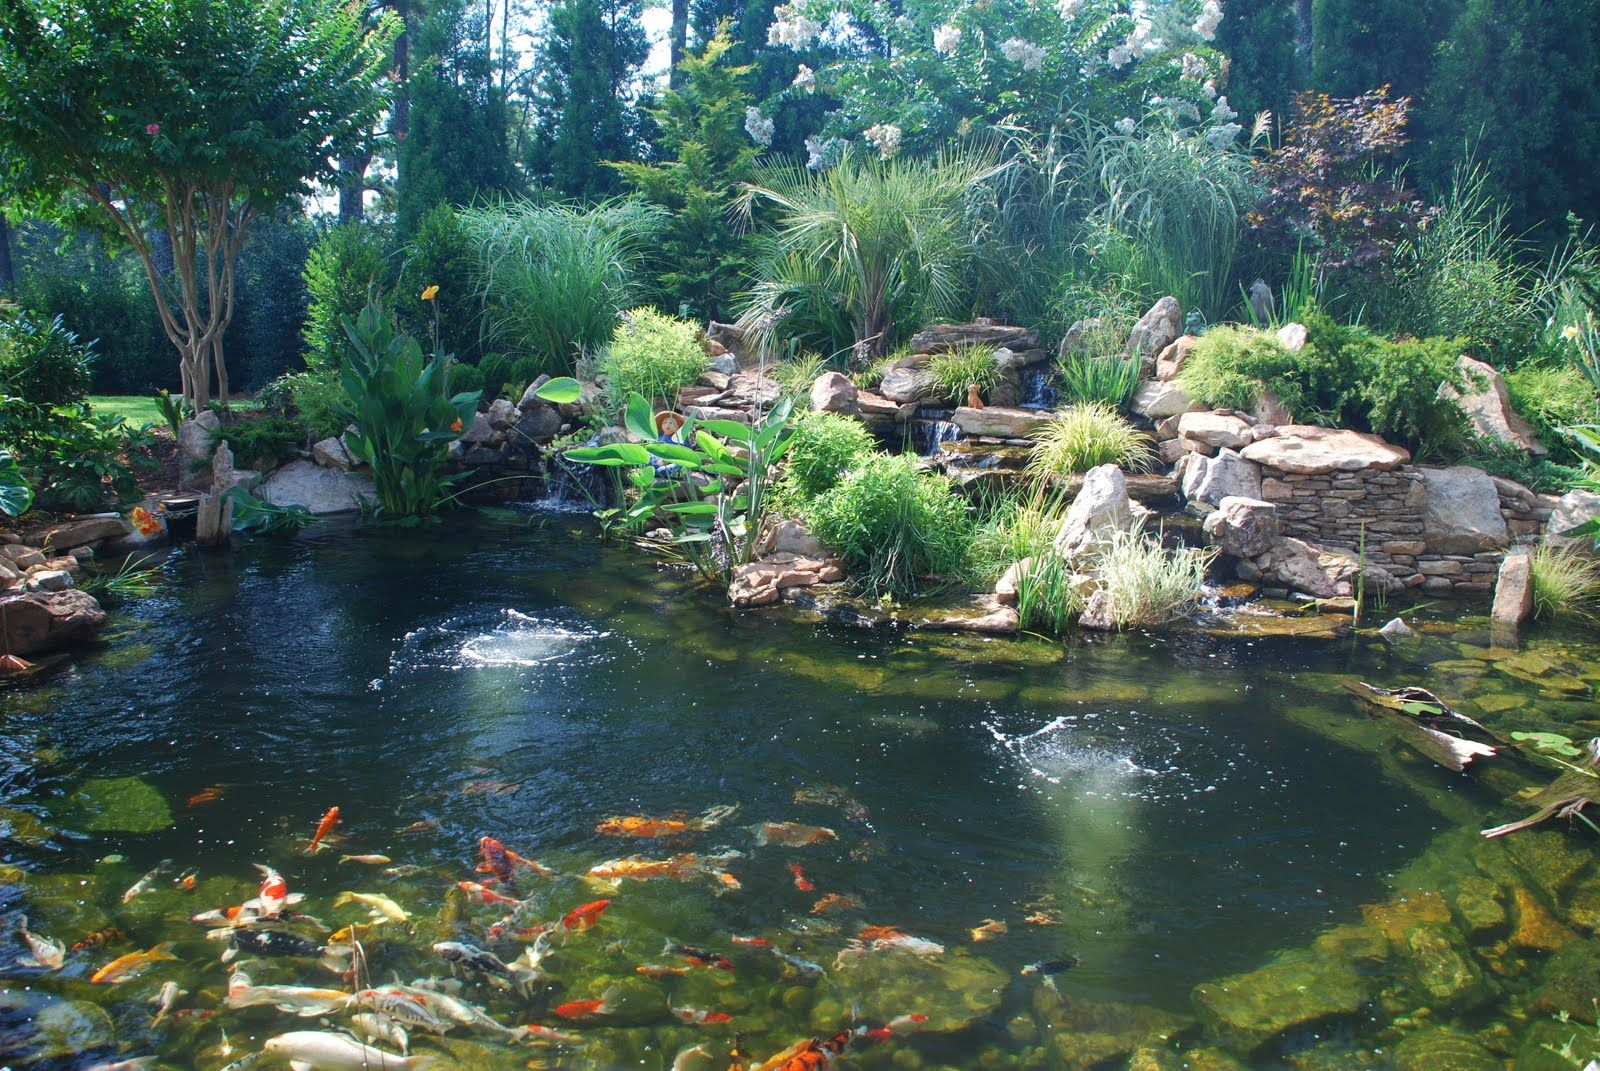 Koi pond splendor koi pond koi ponds require for Koi ponds and gardens